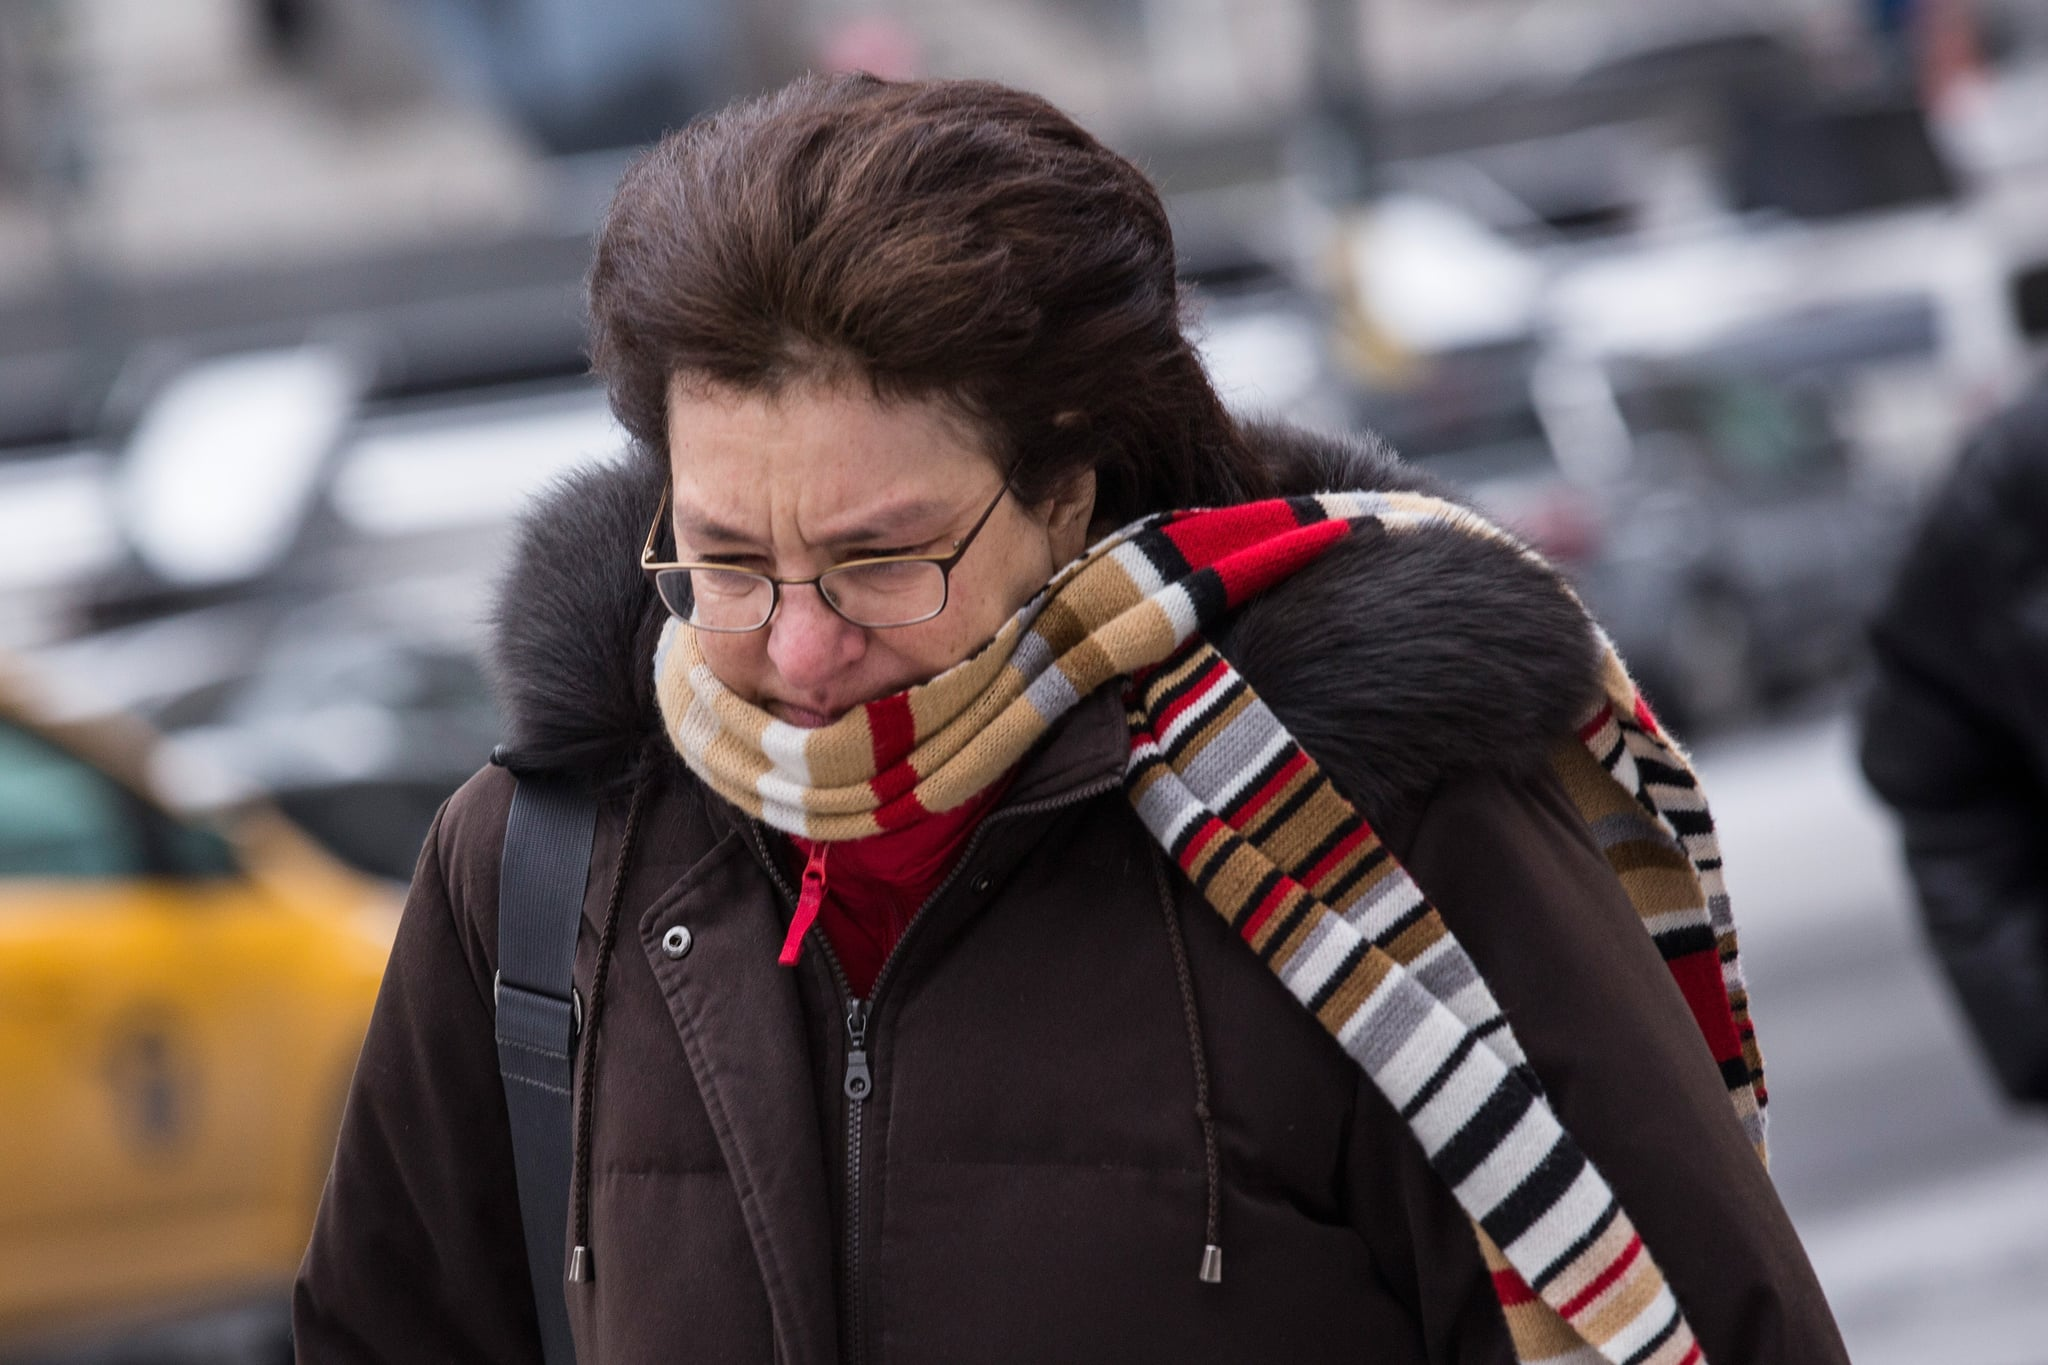 A woman braced herself against the chilly NYC winds.